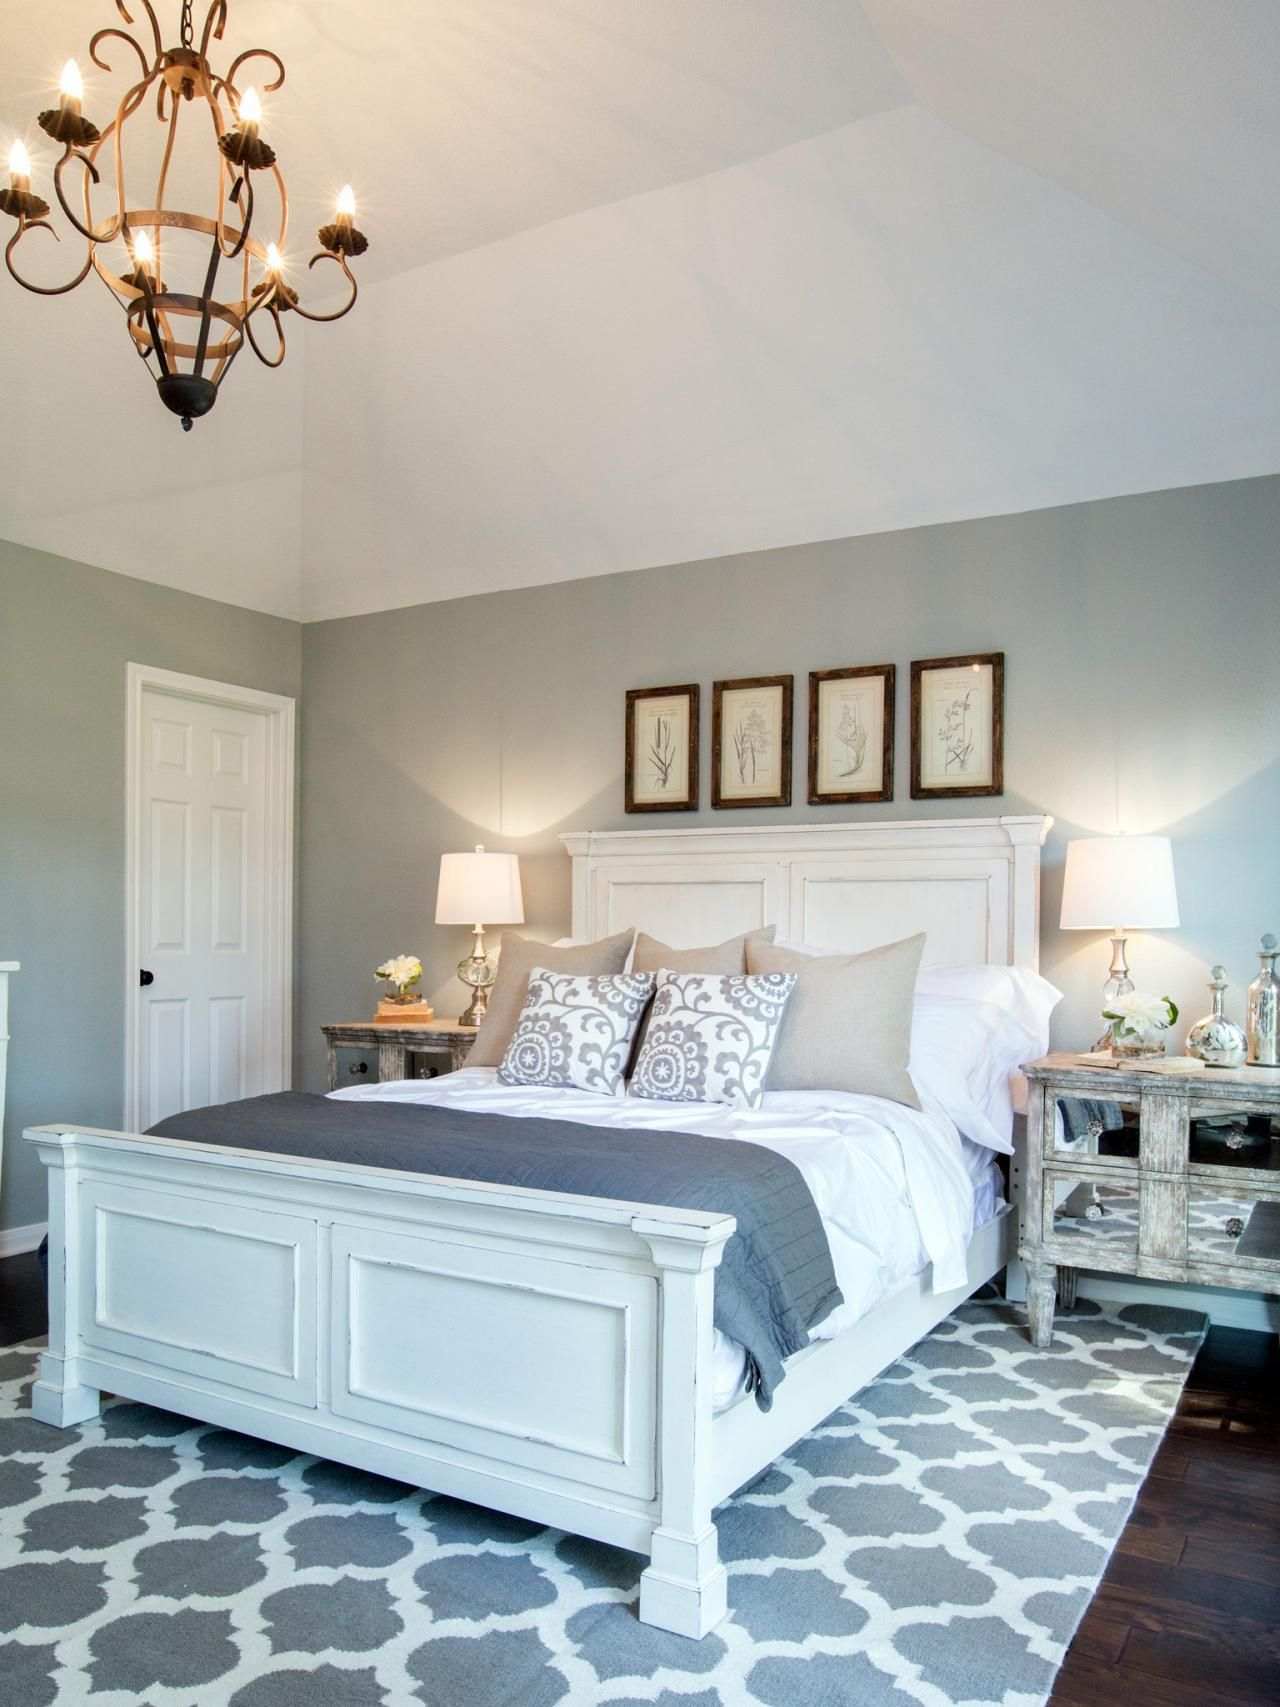 the homeowners 39 bedroom gets a complete makeover by the fixer upper team dining pinterest. Black Bedroom Furniture Sets. Home Design Ideas